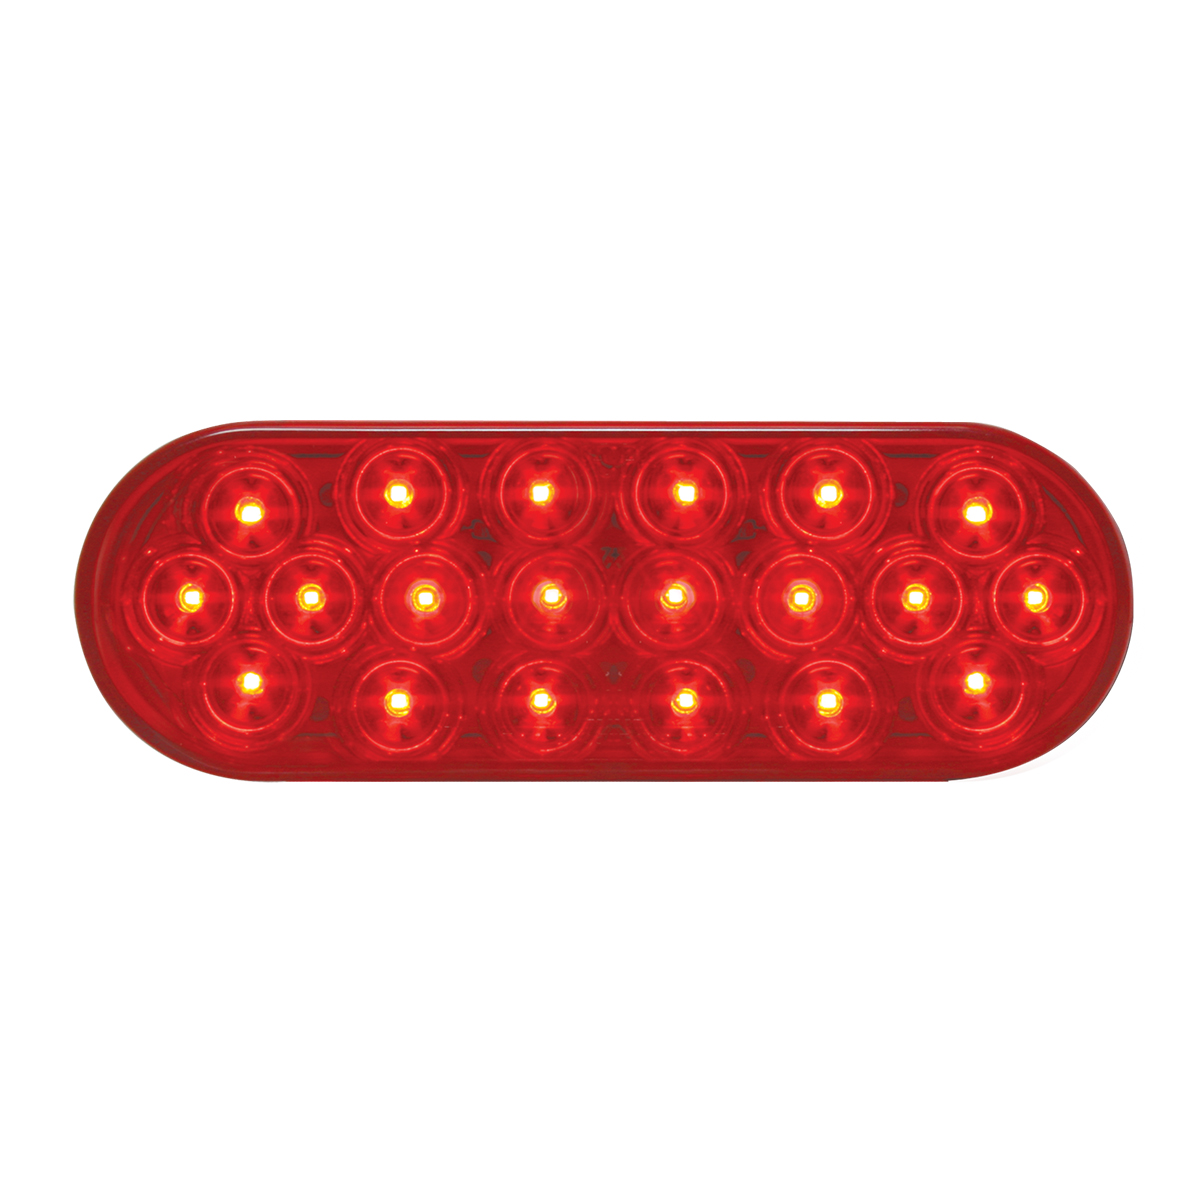 #87721 Oval Sealed Fleet LED Flat Red/Red Lights